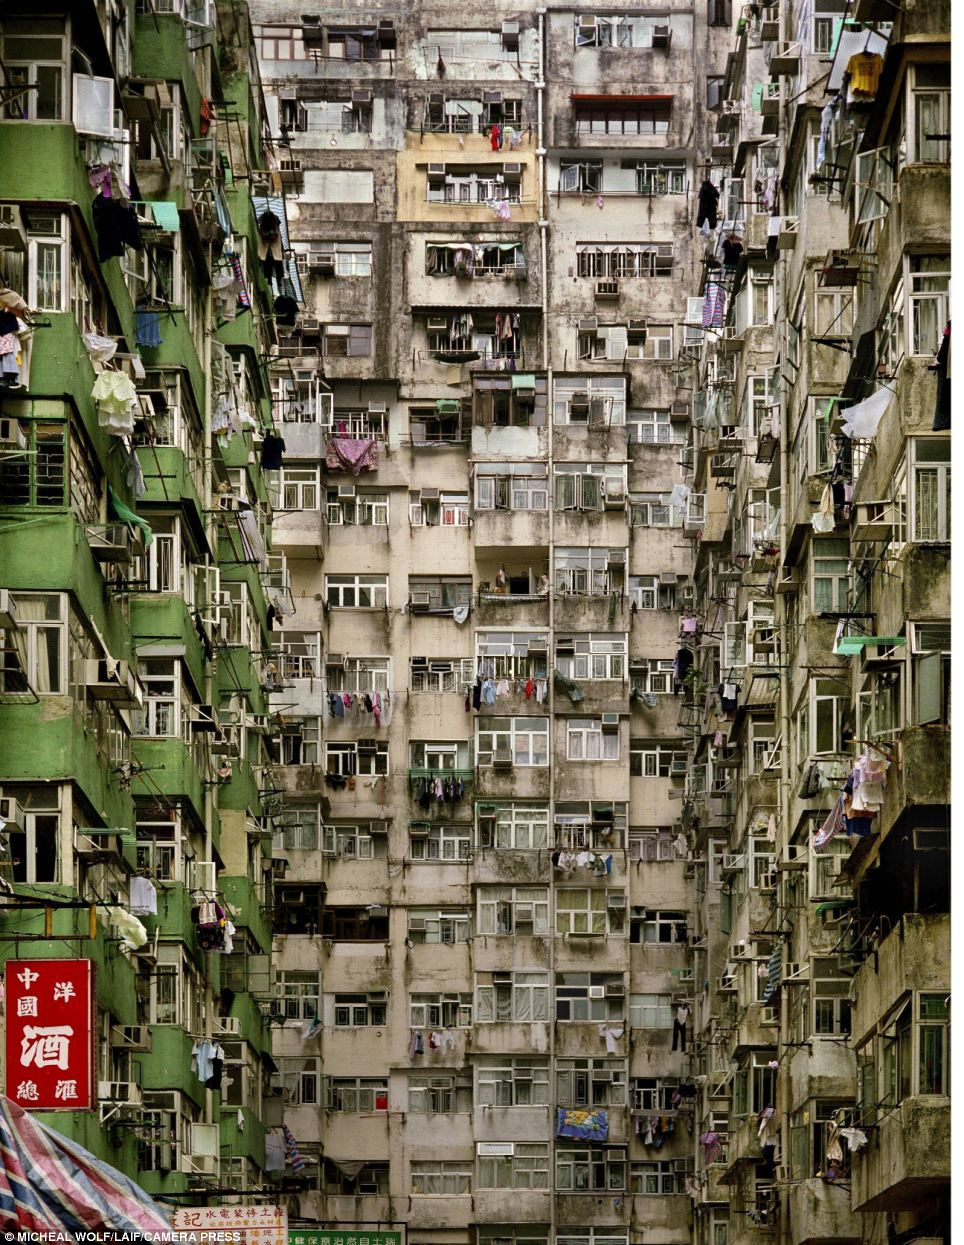 Dilapidated: The photographer documents some less than idyllic living quarters in Hong Kong, where charities have highlighted the plight of underprivileged residents trying to afford a home in a place where space is at a premium